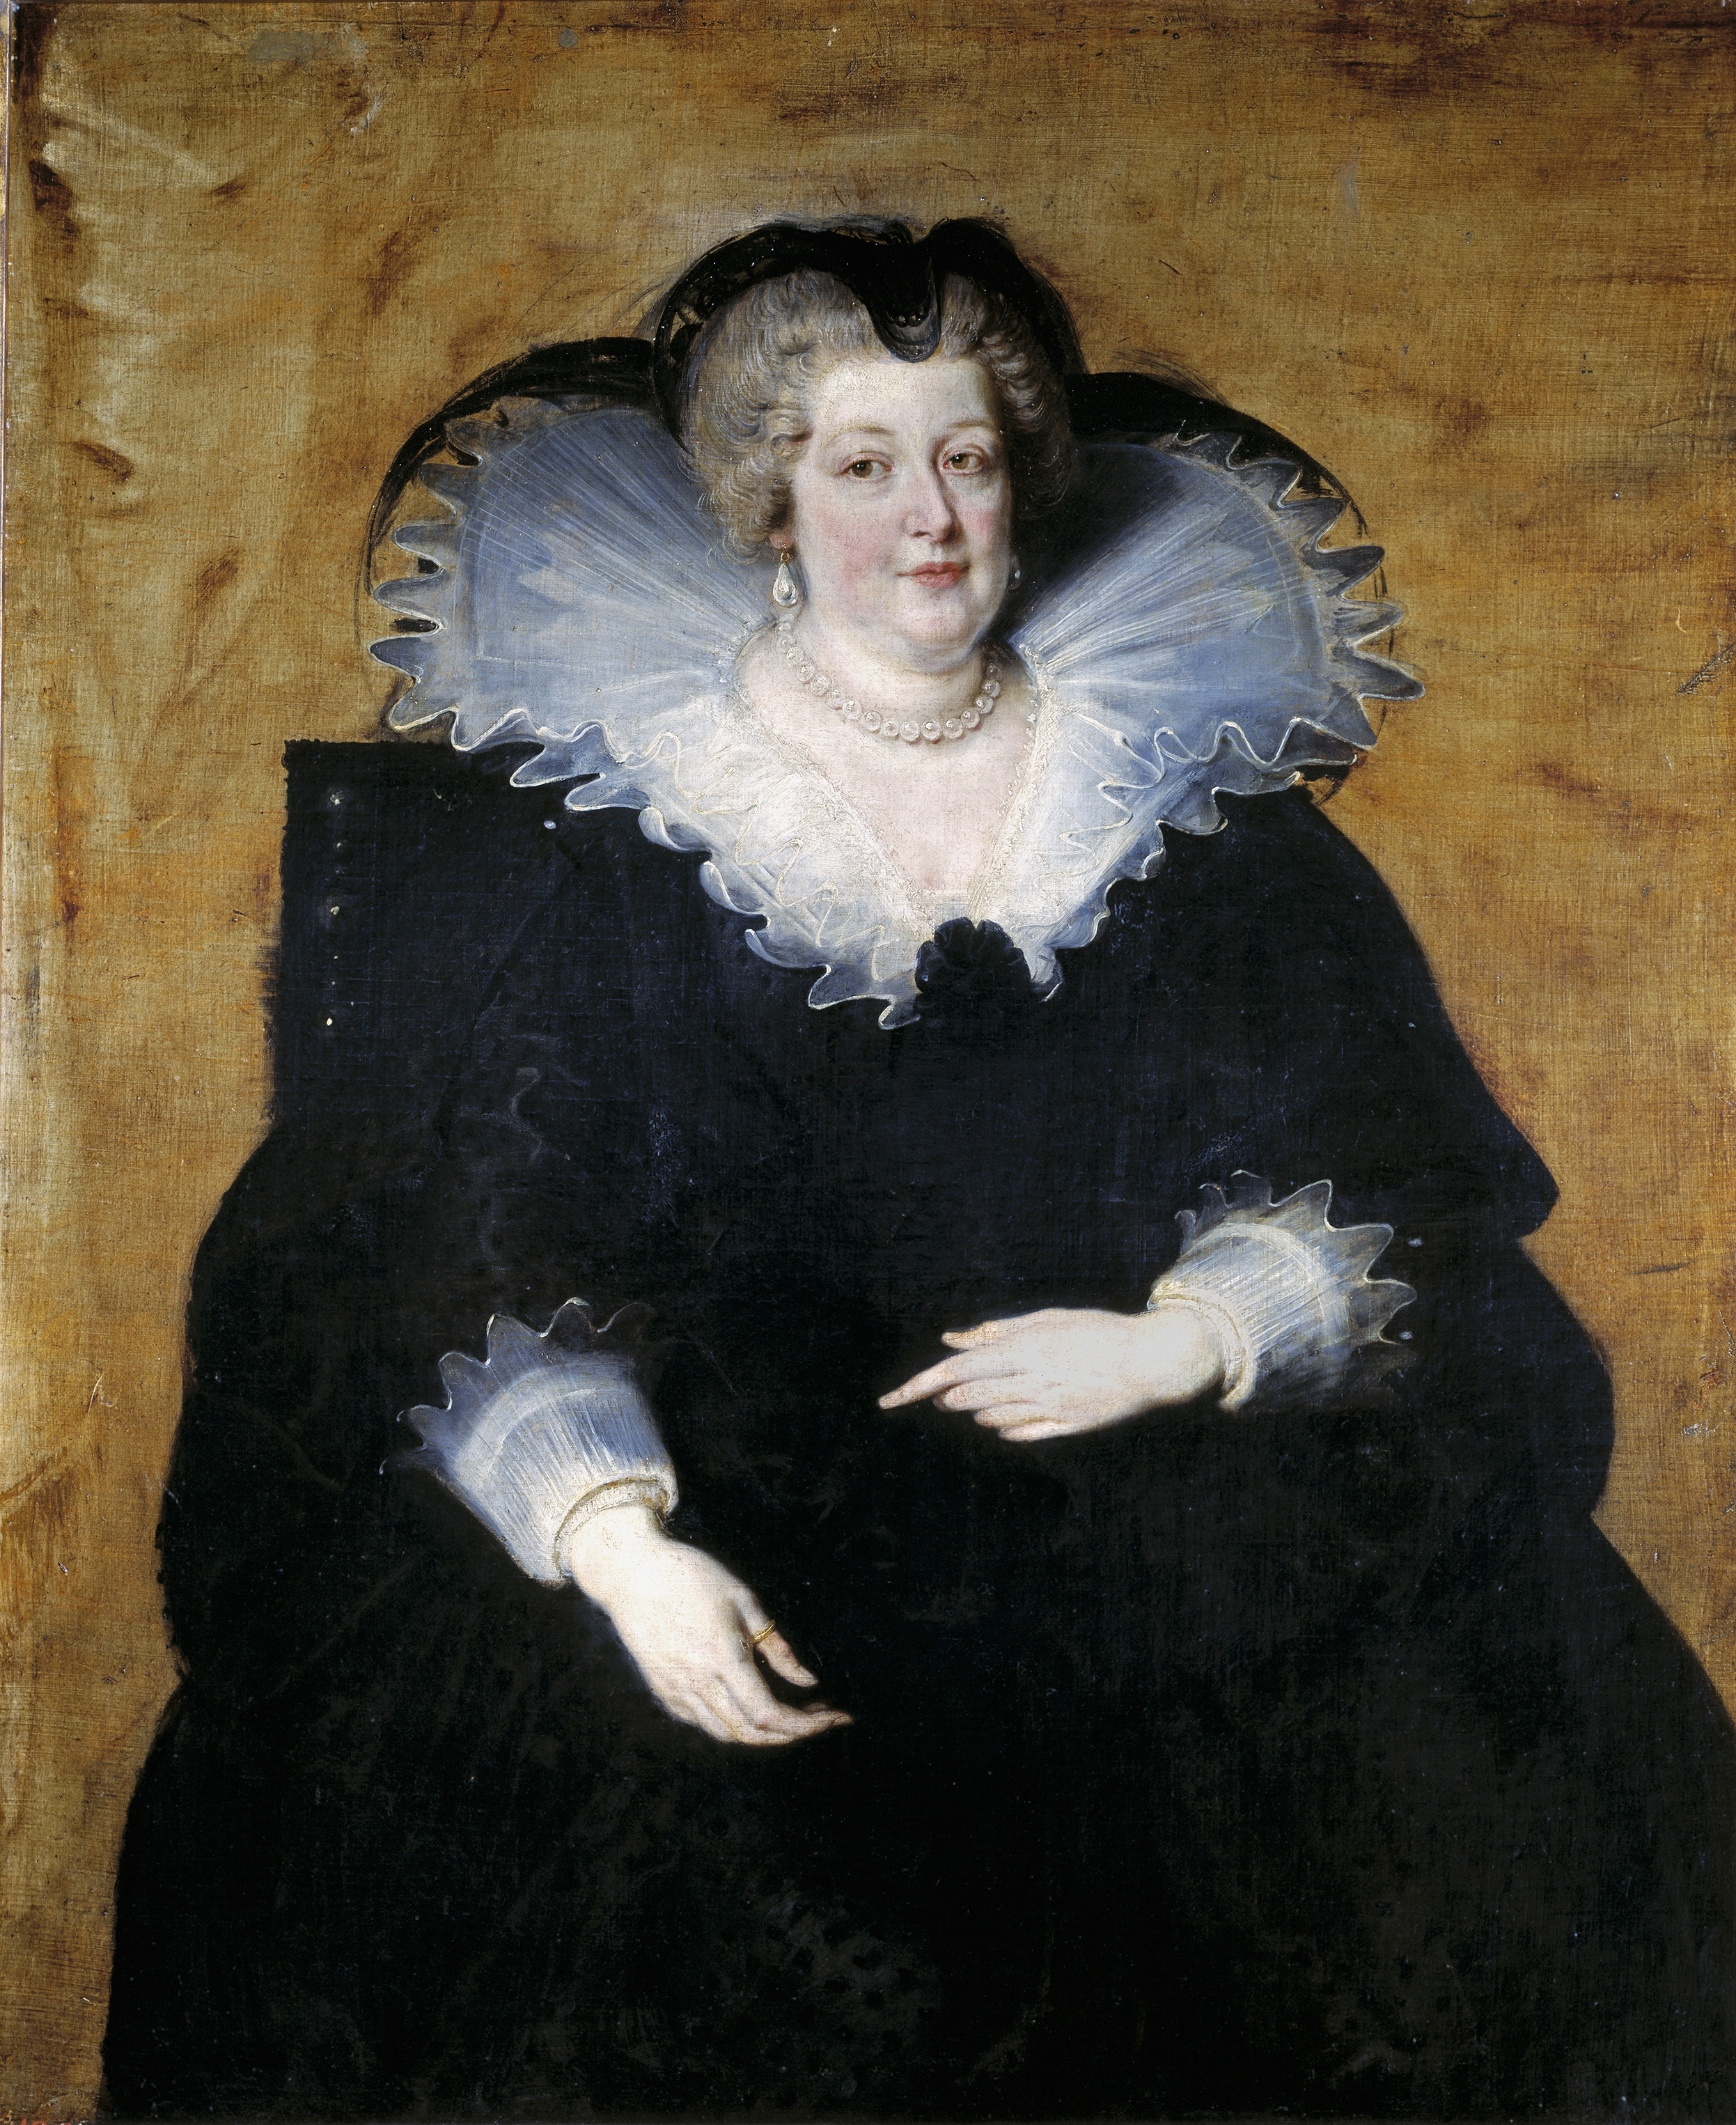 essays on peter paul rubens Ruben's style contains a great deal of vivacity that surpassed even the most  influential artists of his time he had a vivid imagination and was (.